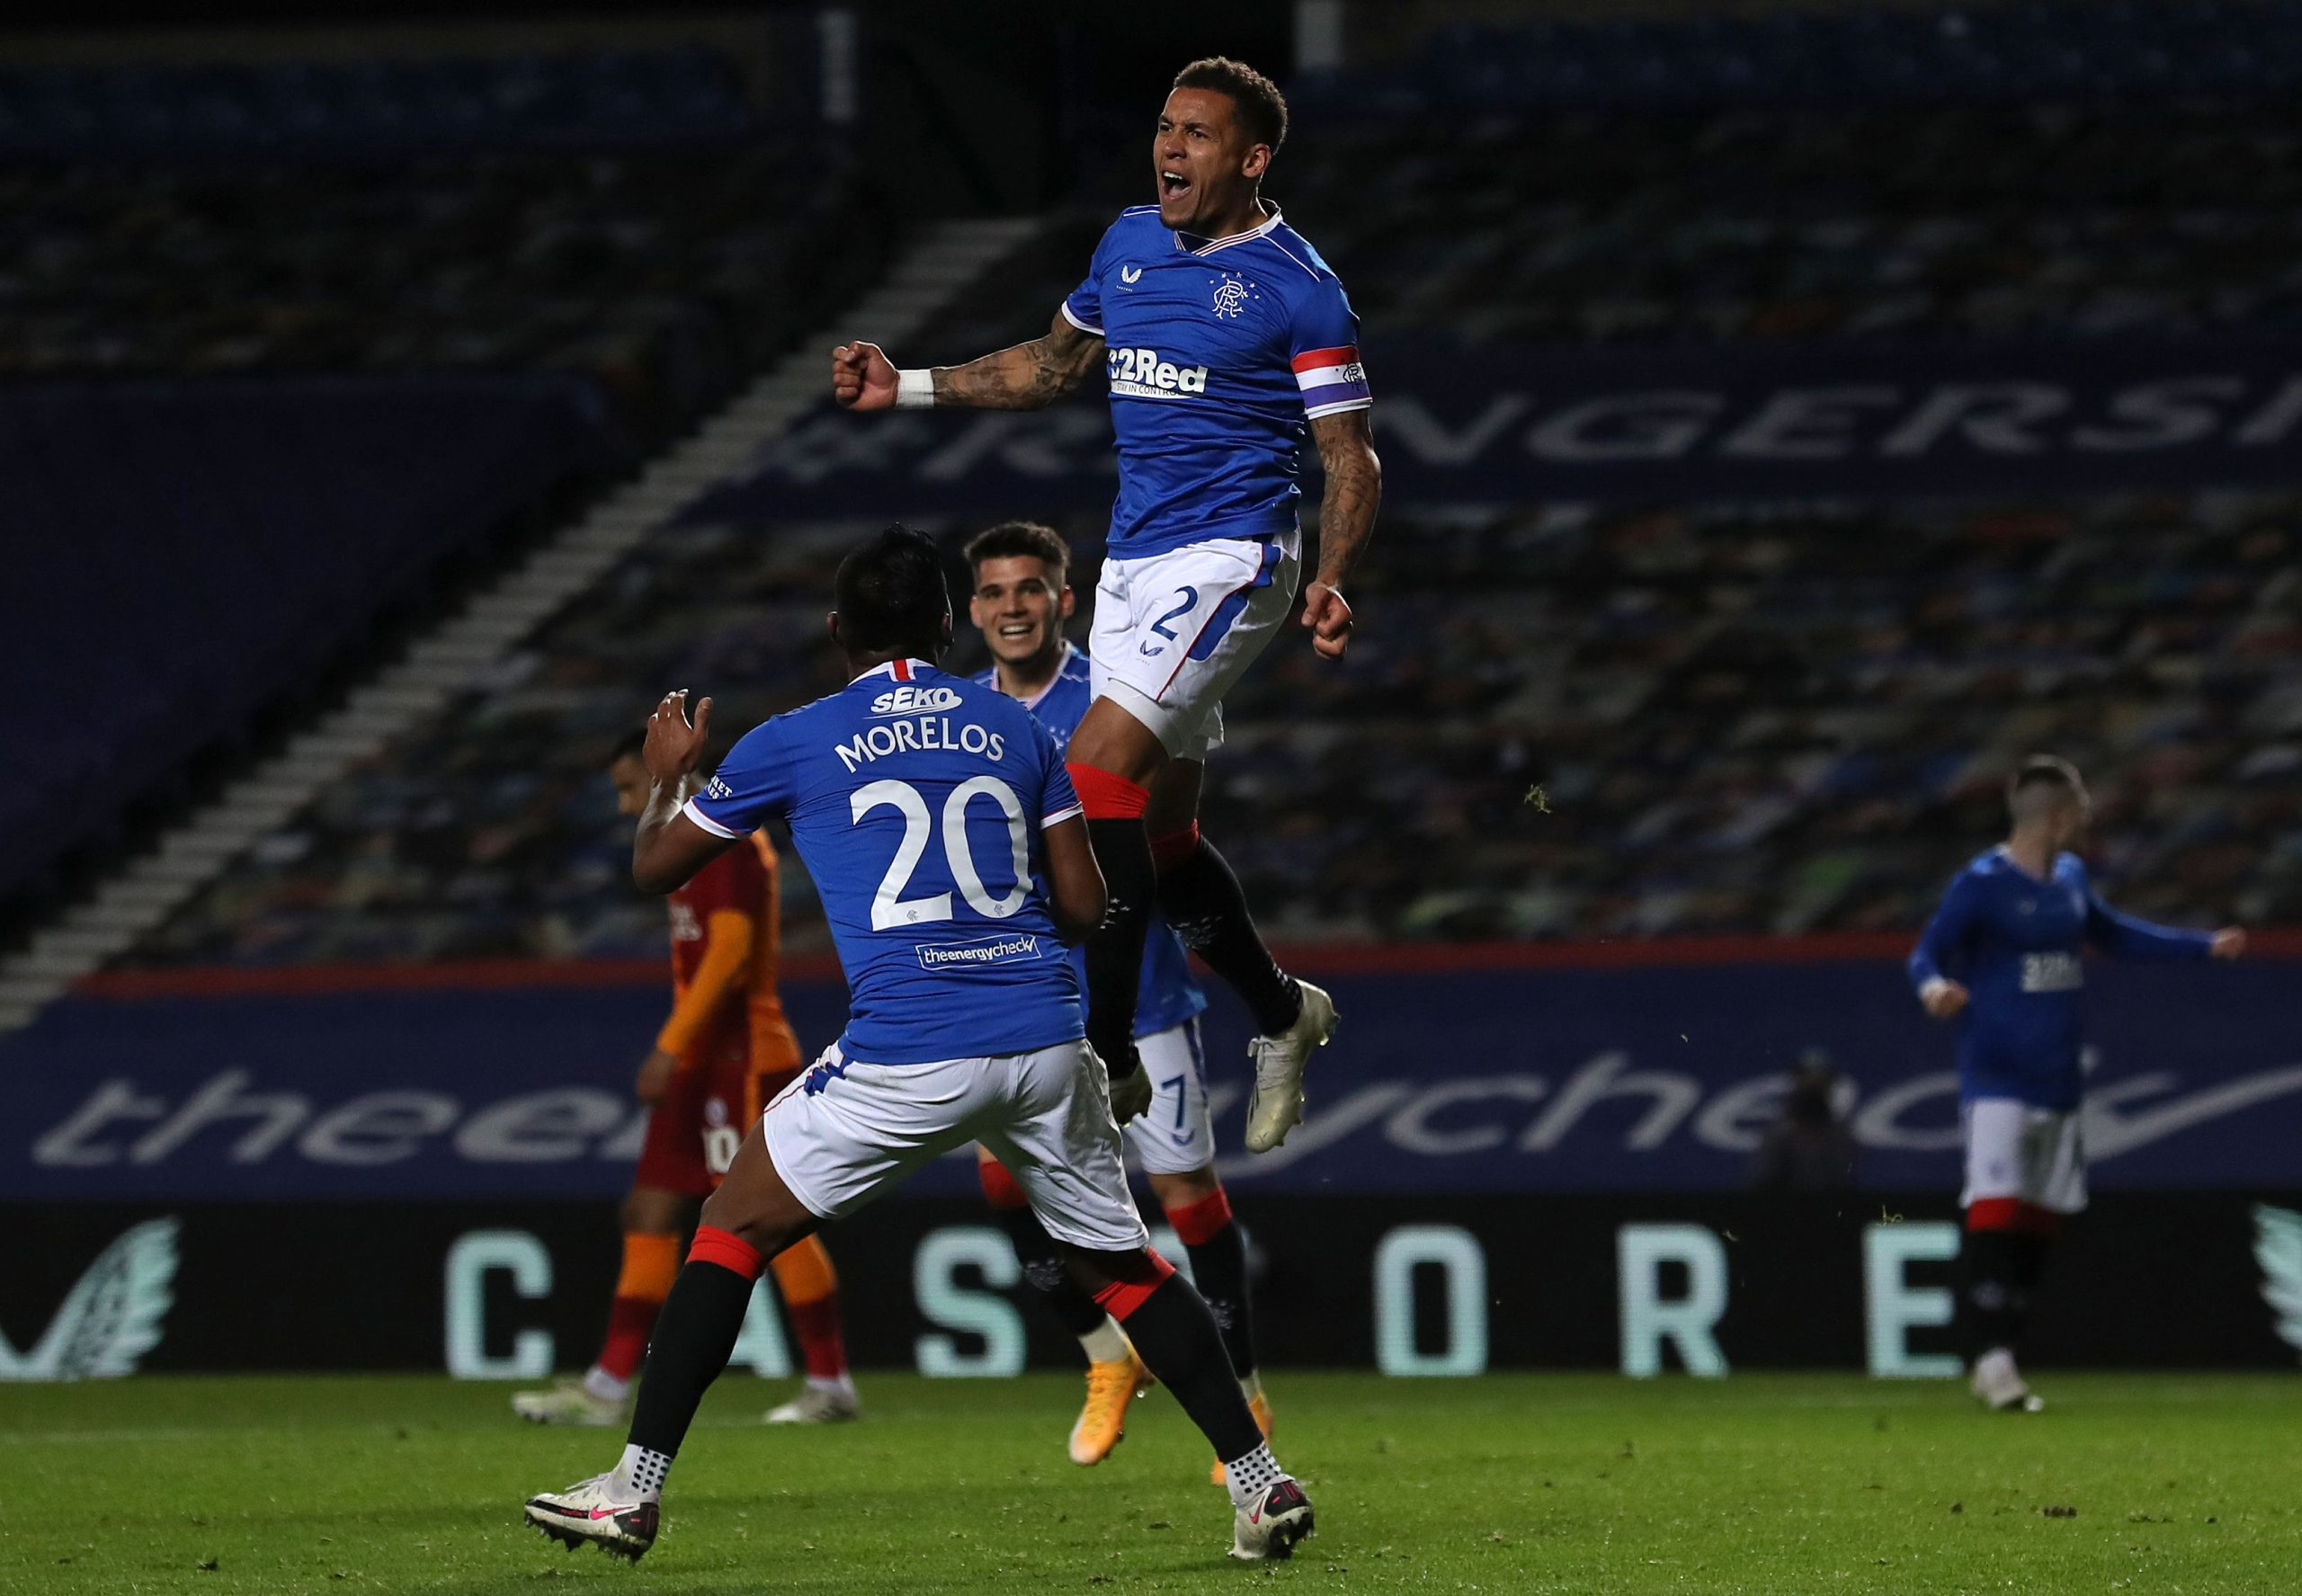 Europa League: Balogun, Etebo Benched As Rangers Edge Galatasaray, Qualify For Group Stage; Egbo's Tirana Crash Out